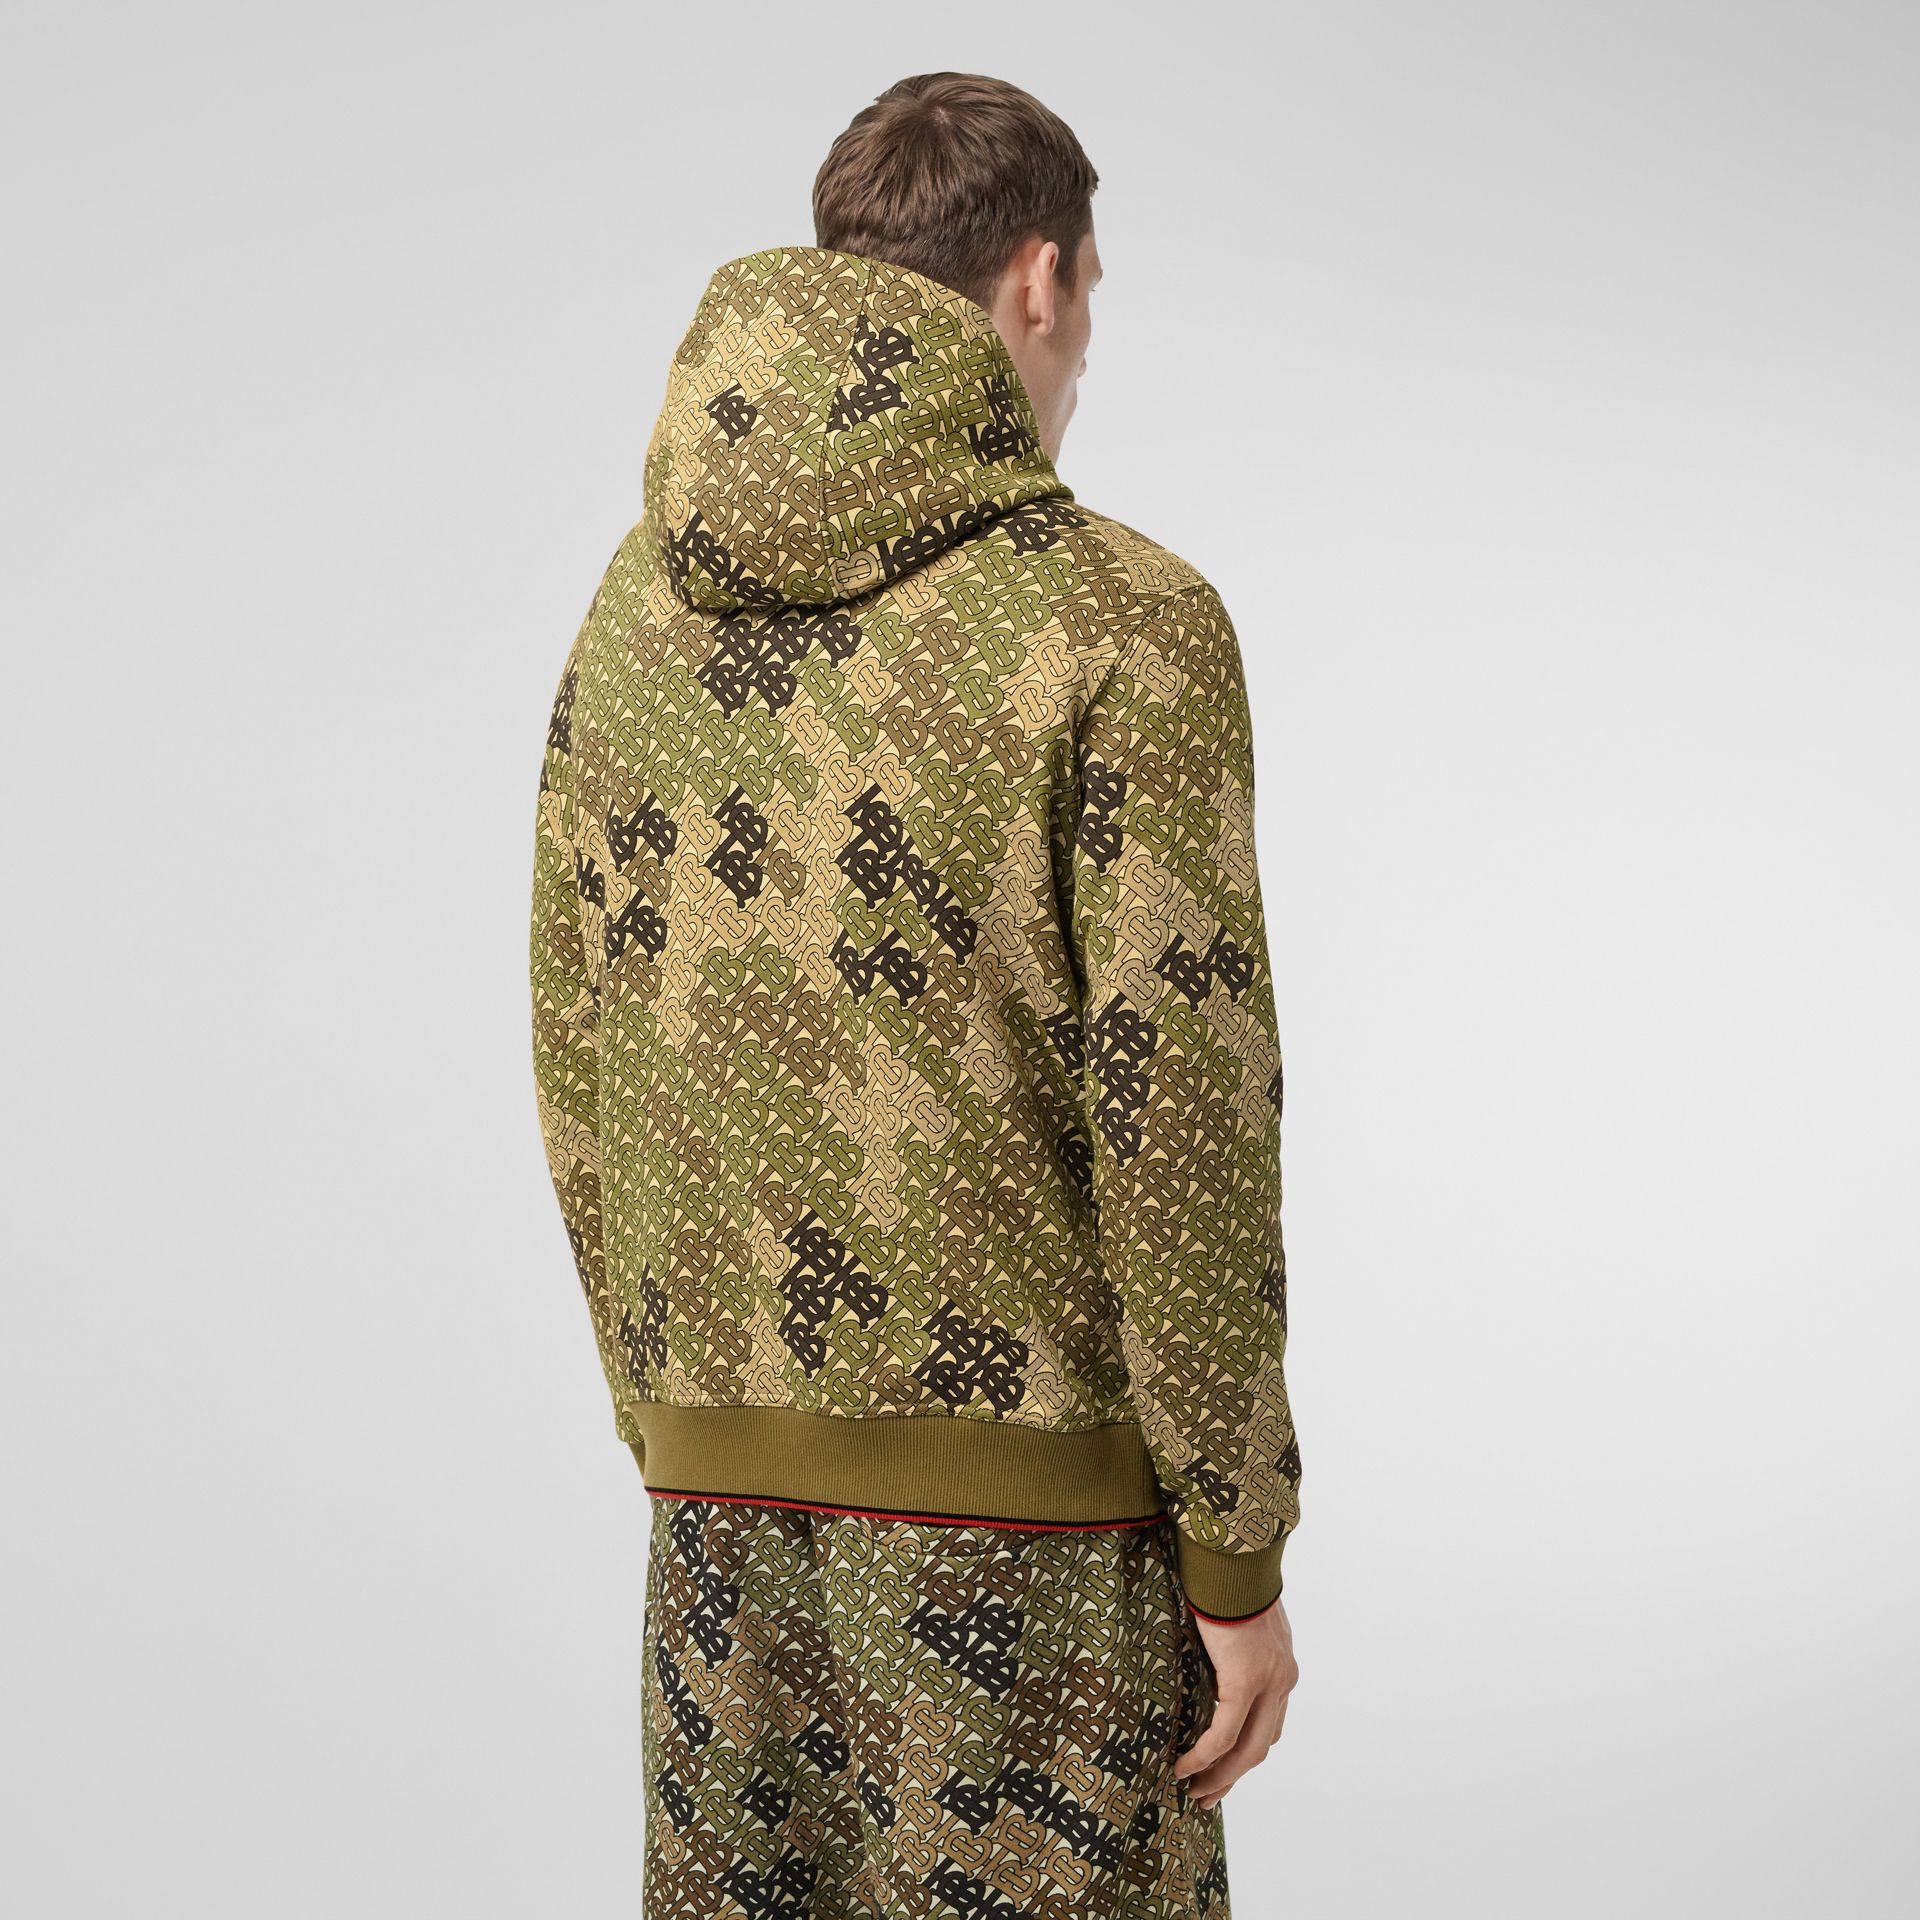 Monogram Print Cotton Hoodie in Khaki Green - Men | Burberry - gallery image 2